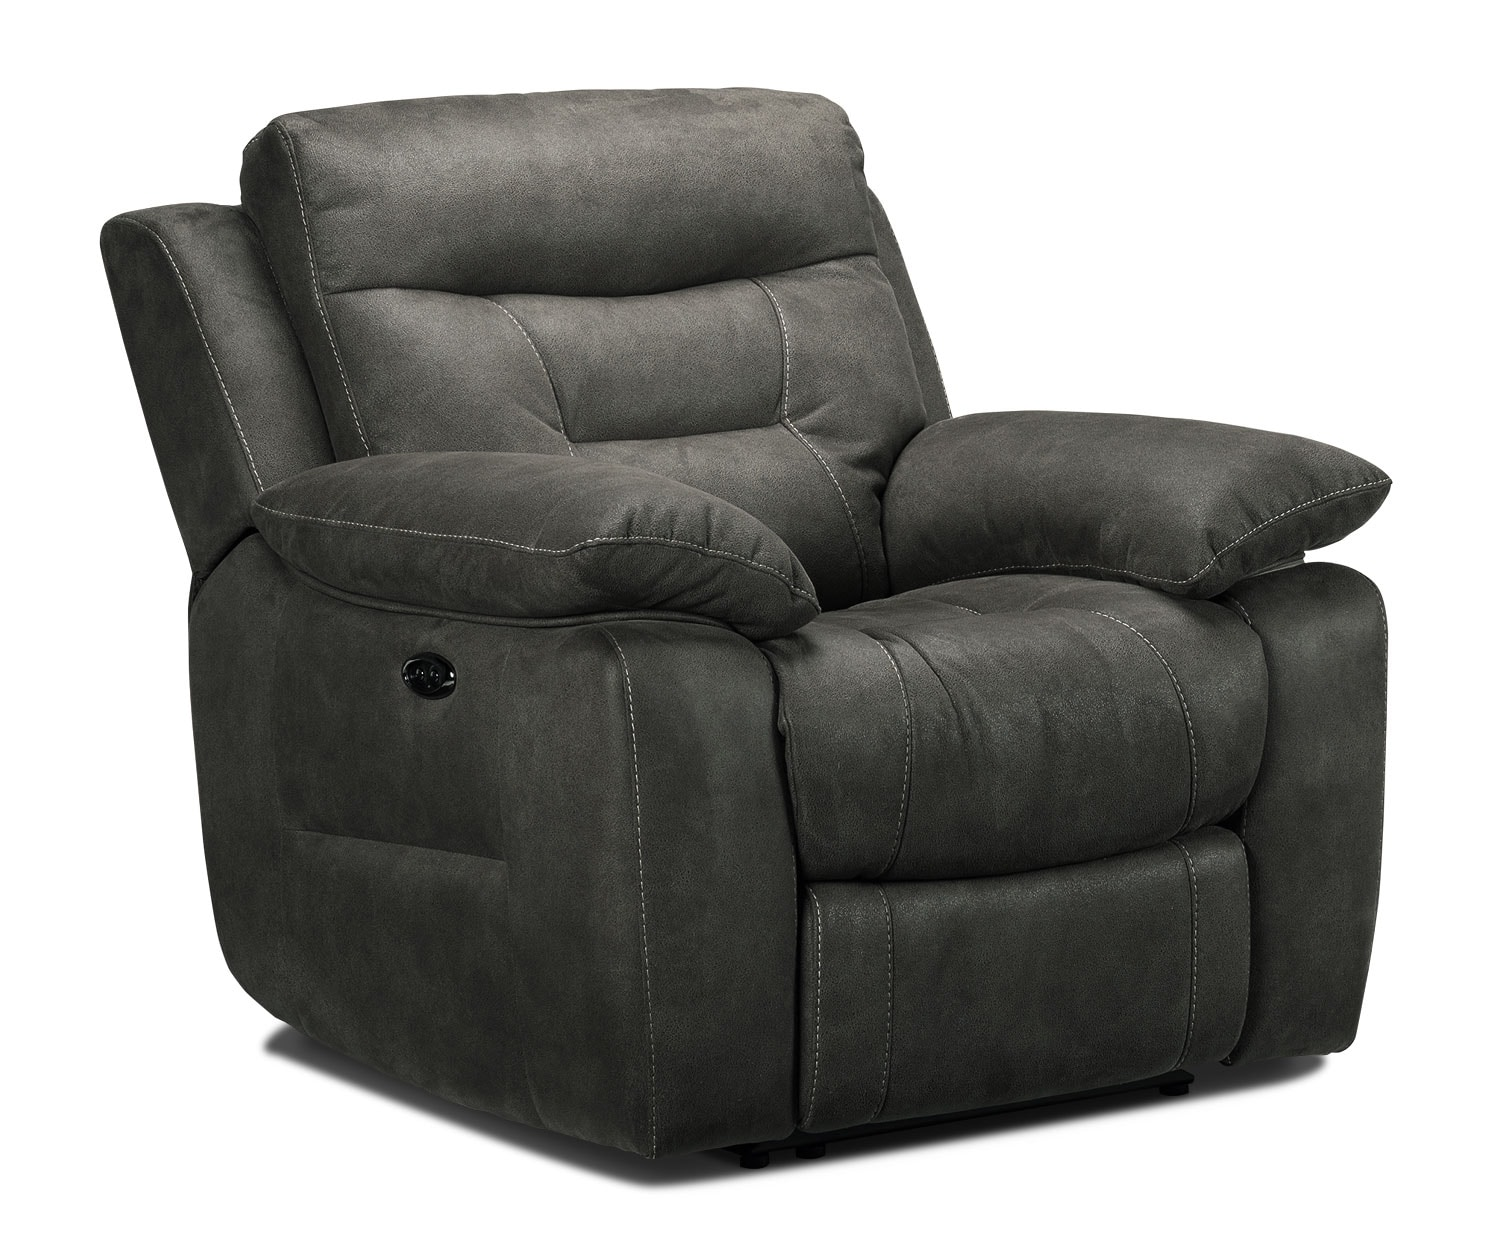 Living Room Furniture - Collins Power Recliner - Charcoal Grey